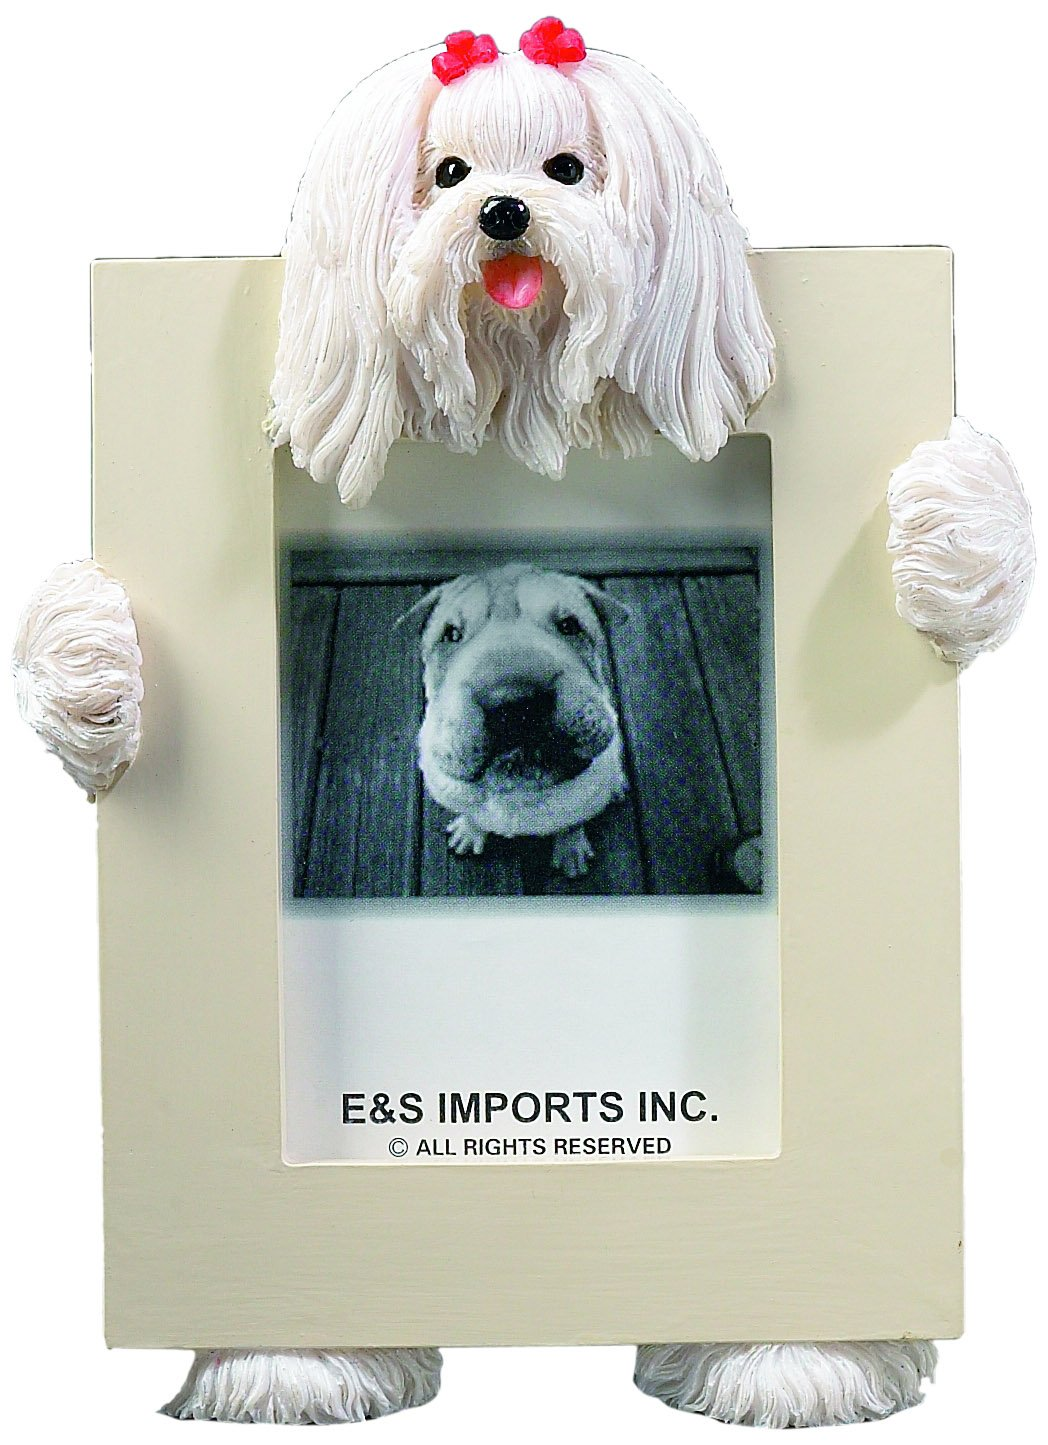 Maltese Picture Frame Holds Your Favorite 2.5 by 3.5 Inch Photo, Hand Painted Realistic Looking Maltese Stands 6 Inches Tall Holding Beautifully Crafted Frame, Unique and Special Maltese Gifts for Maltese Owners